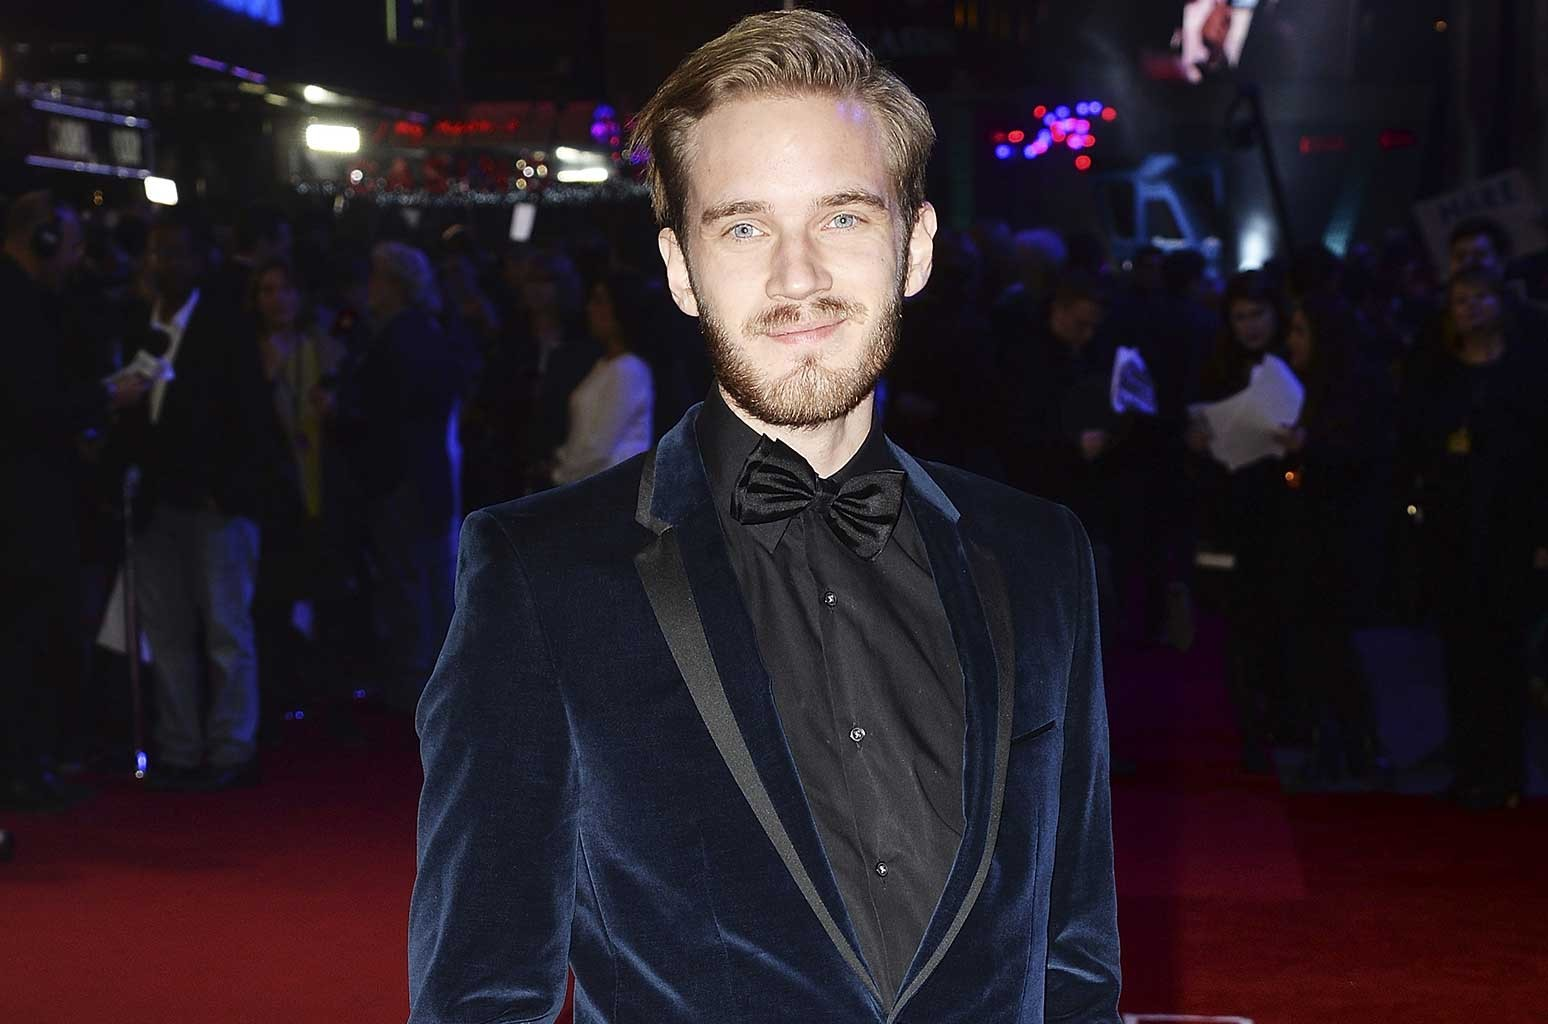 """PewDiePie attends the European Premiere of """"Star Wars: The Force Awakens"""" at Leicester Square on Dec. 16, 2015 in London, England."""